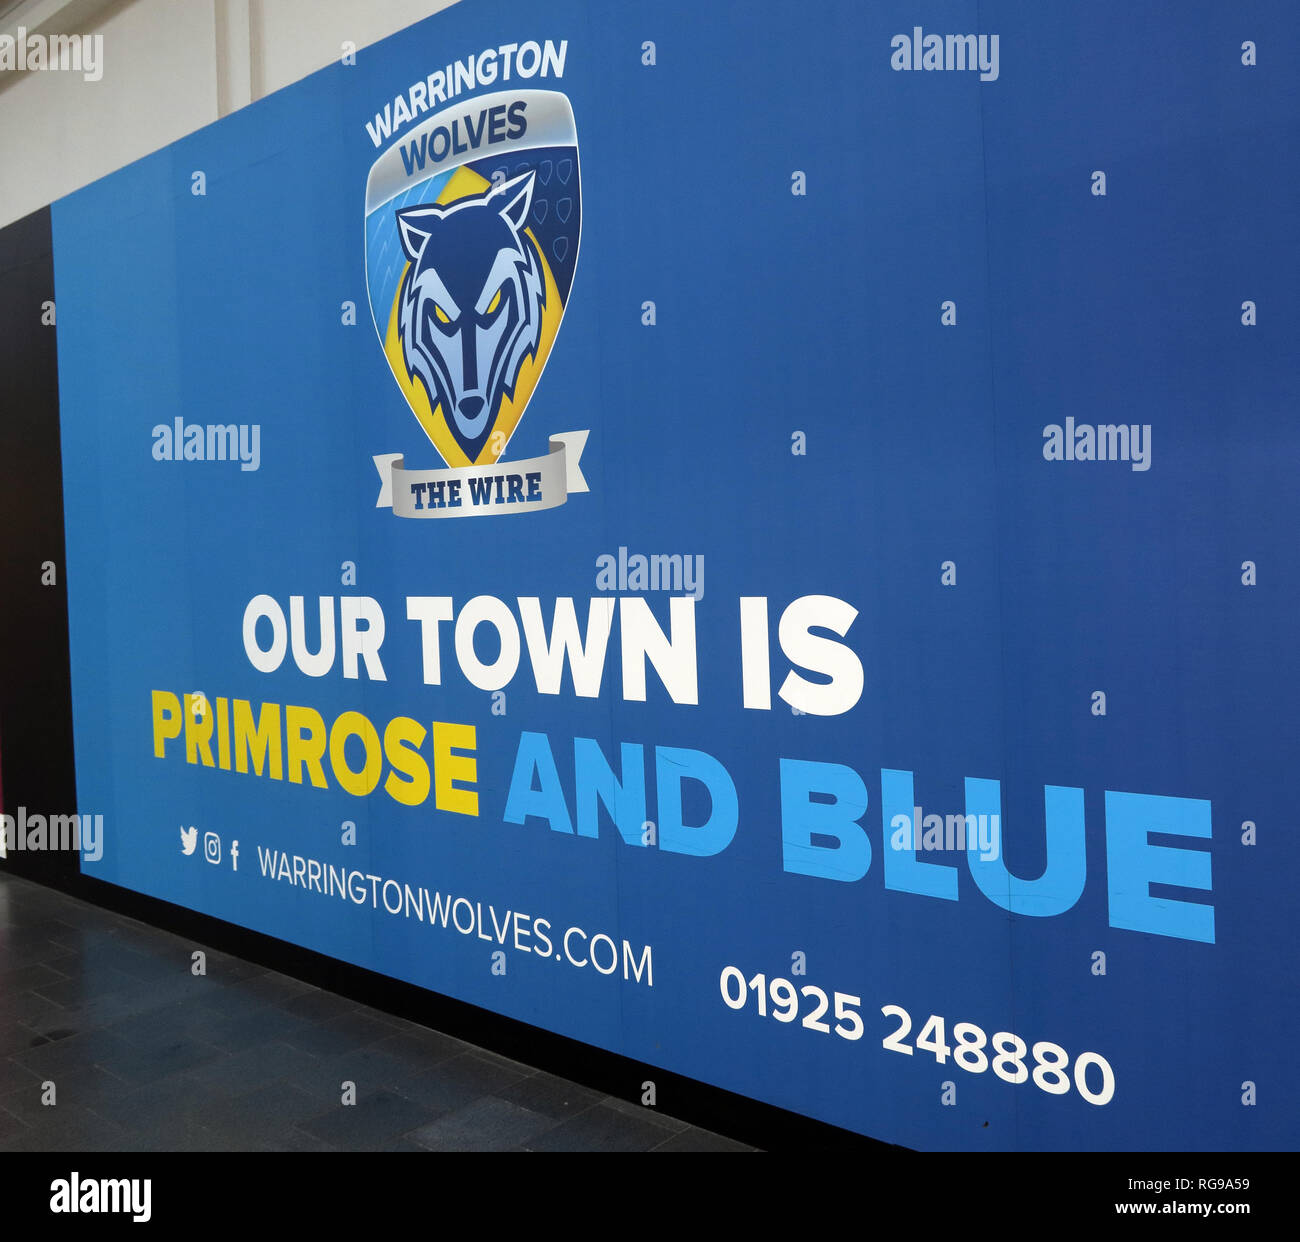 Warrington, Our Town Is Primrose and Blue, Golden Square Shopping Centre, Cheshire, North West England, UK - Stock Image